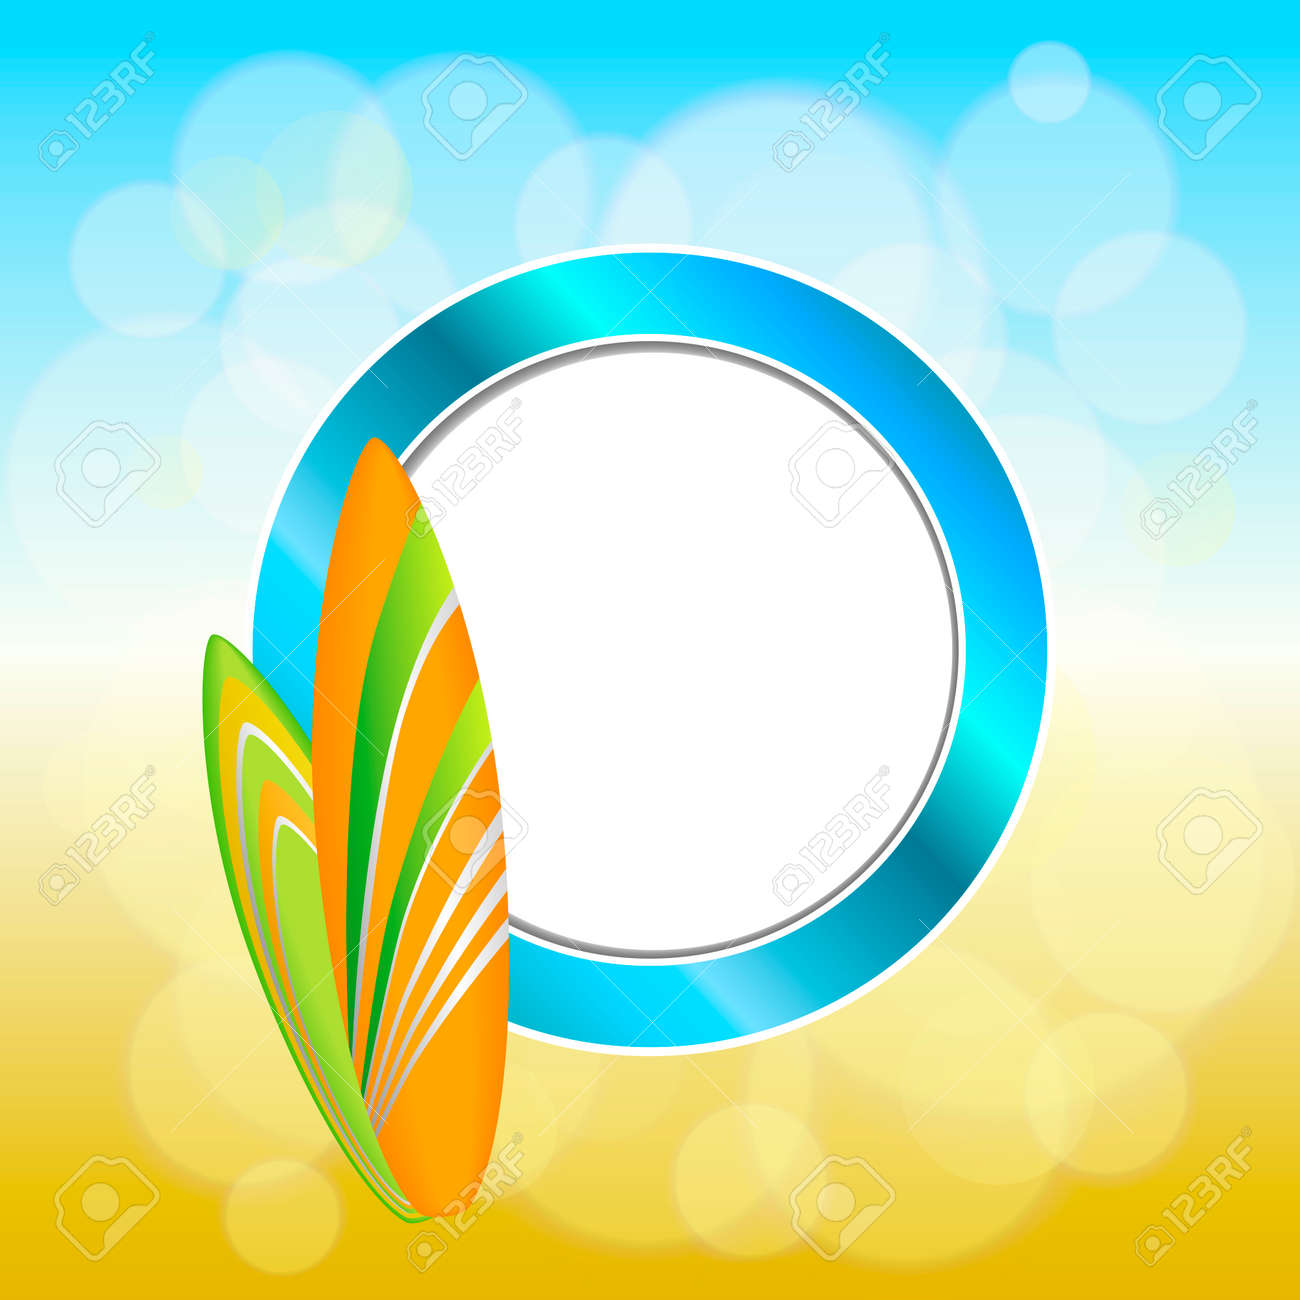 Abstract Background Holidays Design Orange Green Surfboards Blue